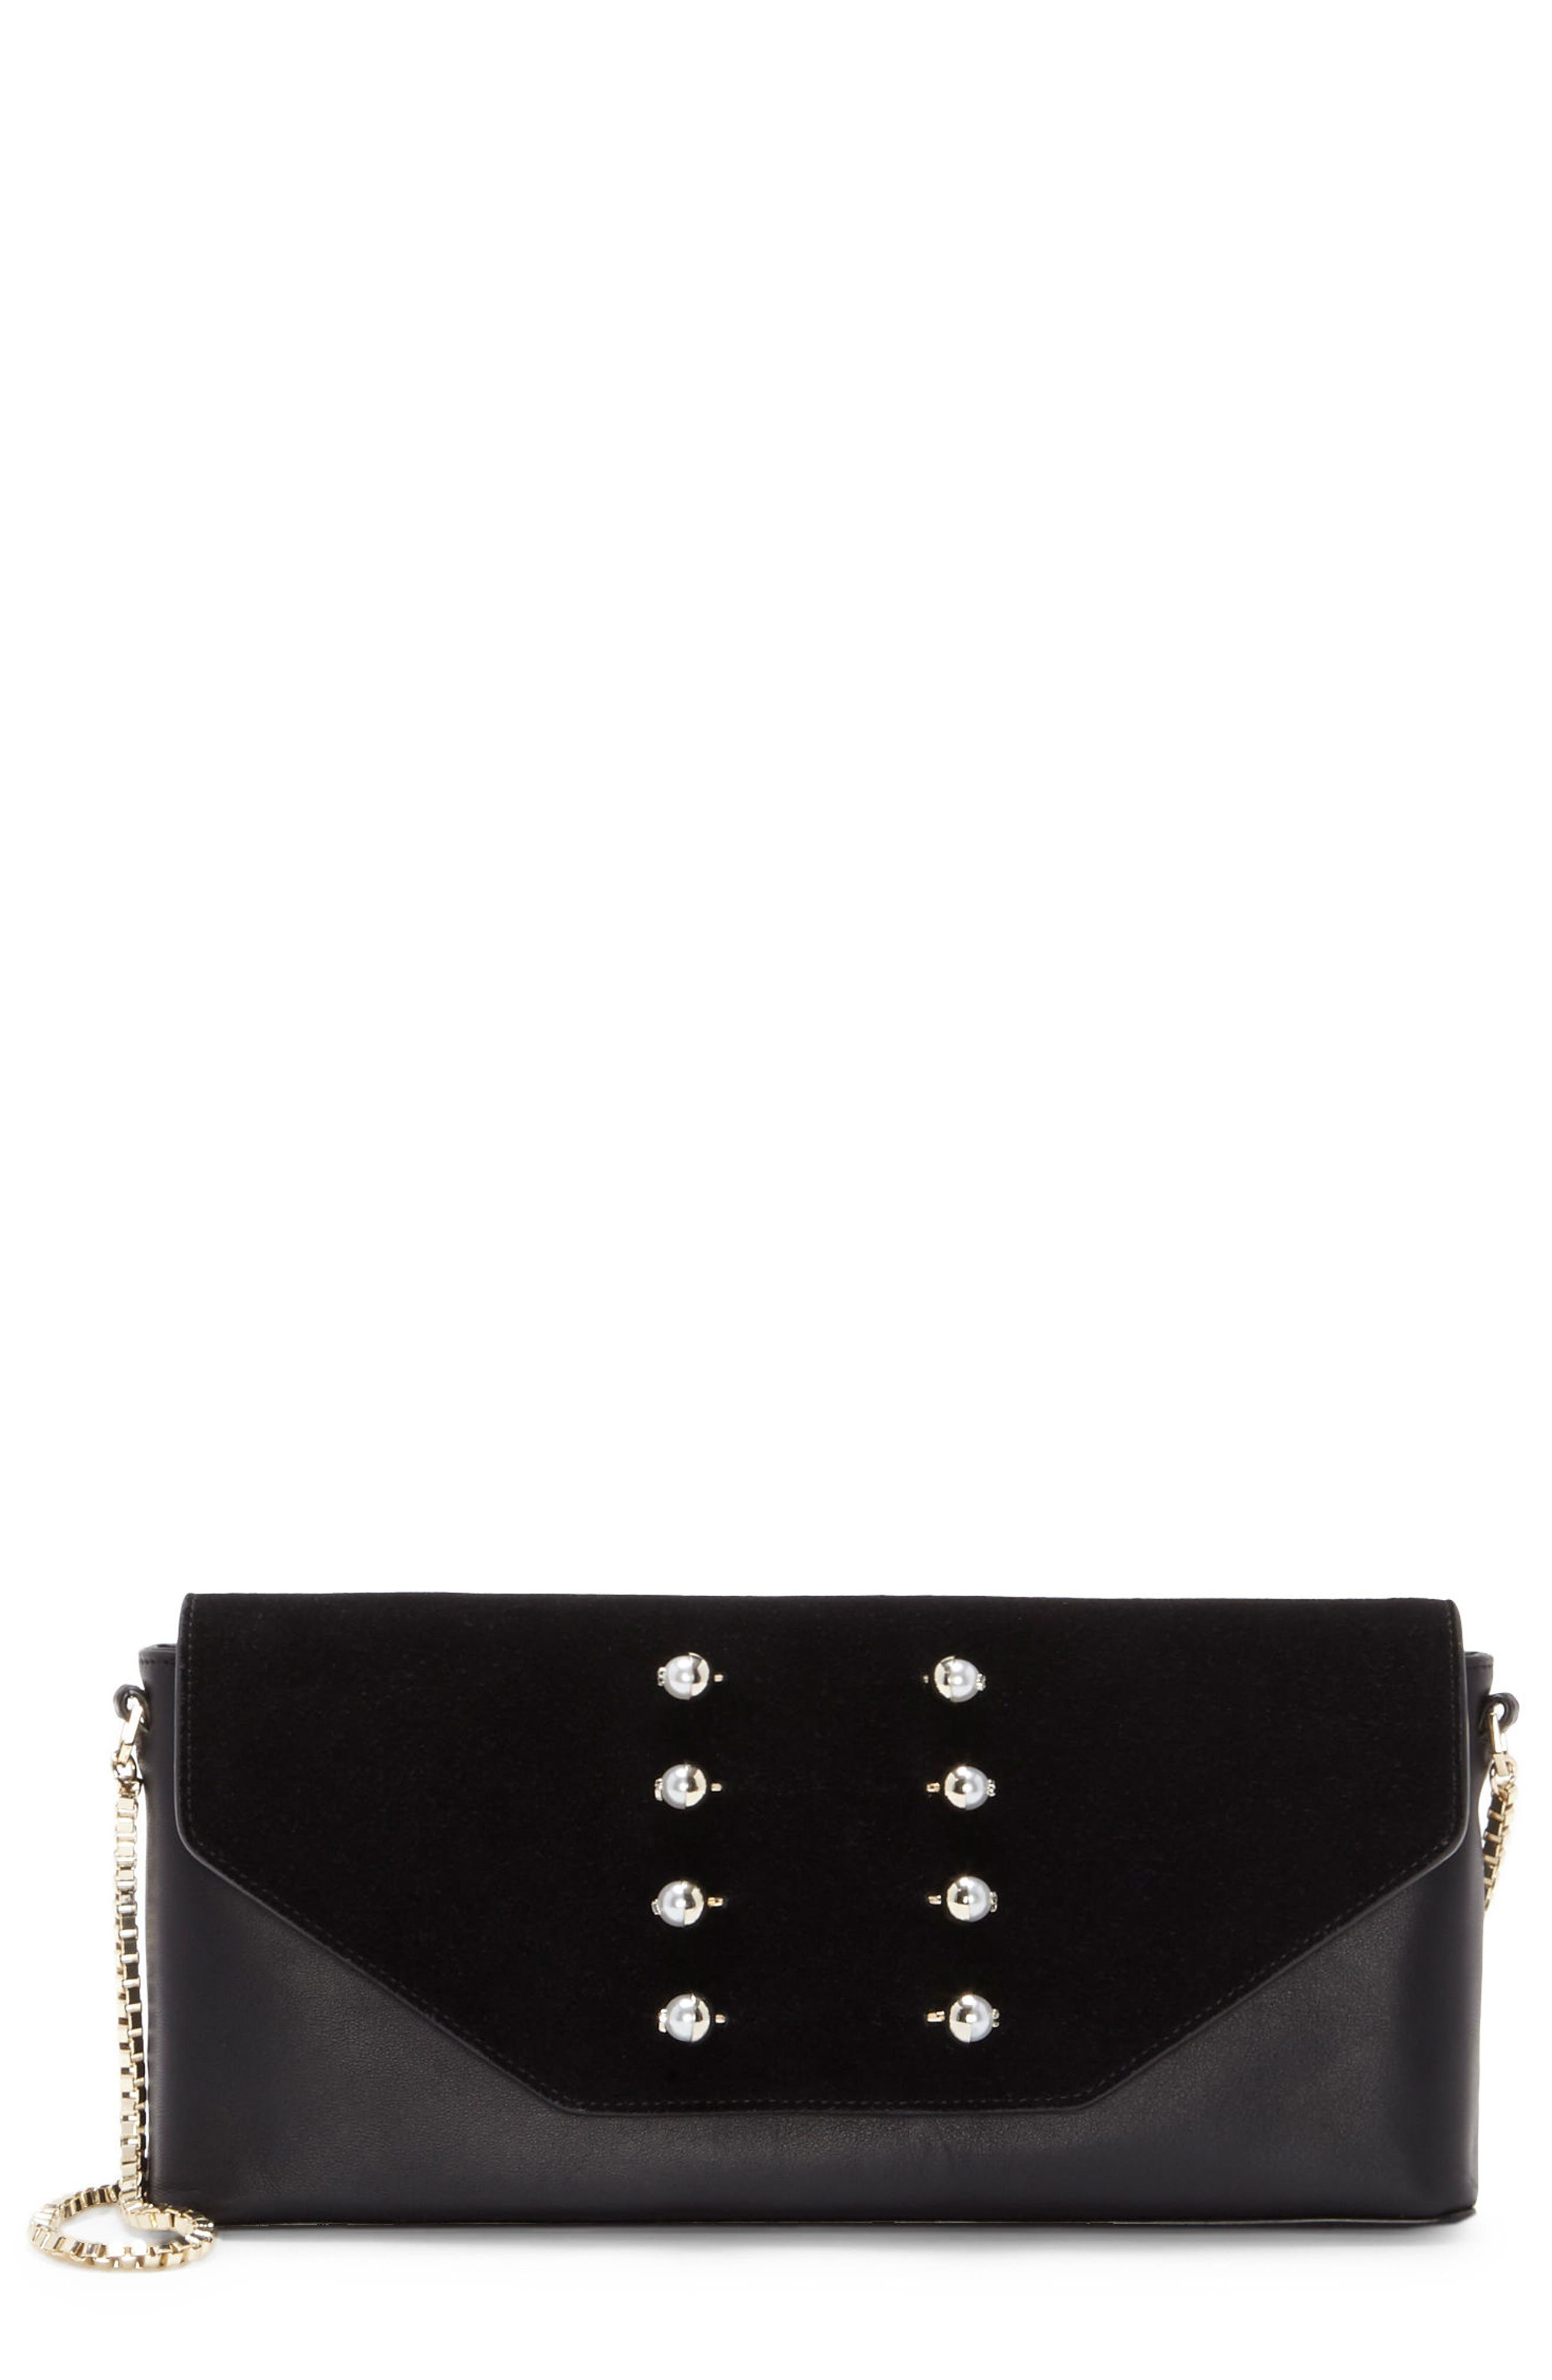 Louise et Cie Gya Imitation Pearl Embellished Suede & Leather Clutch